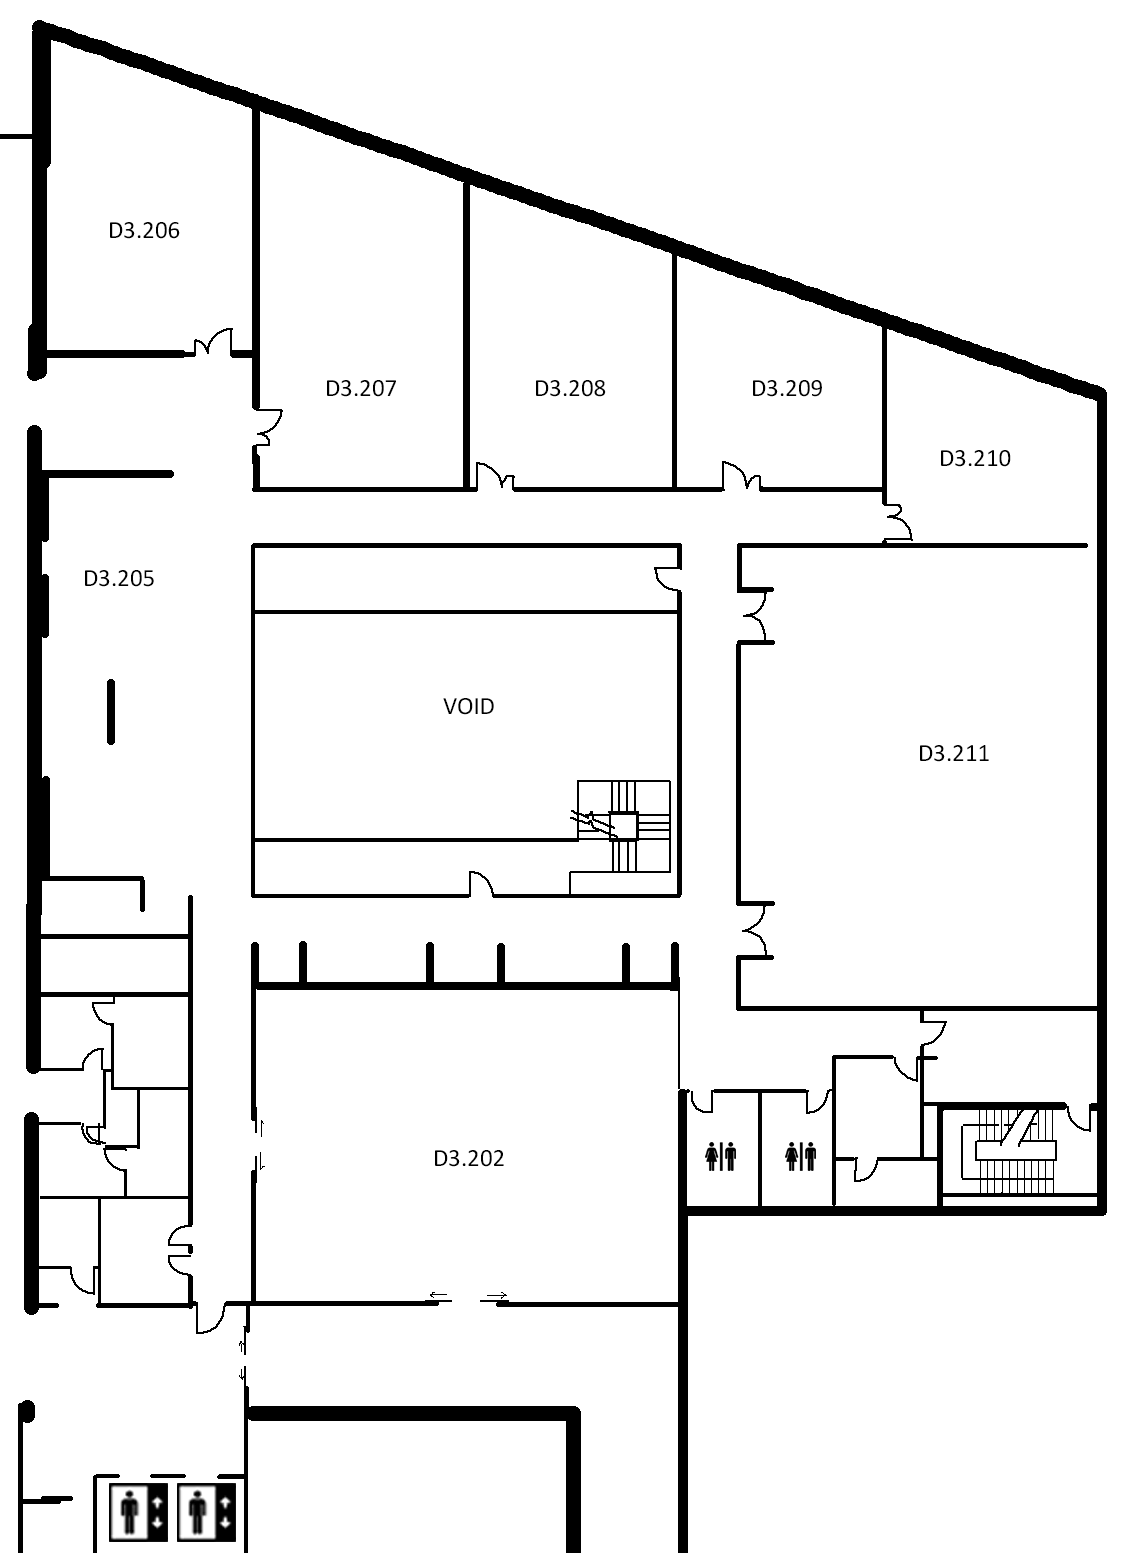 Map indicating the location of the rooms listed for Building D, level 3